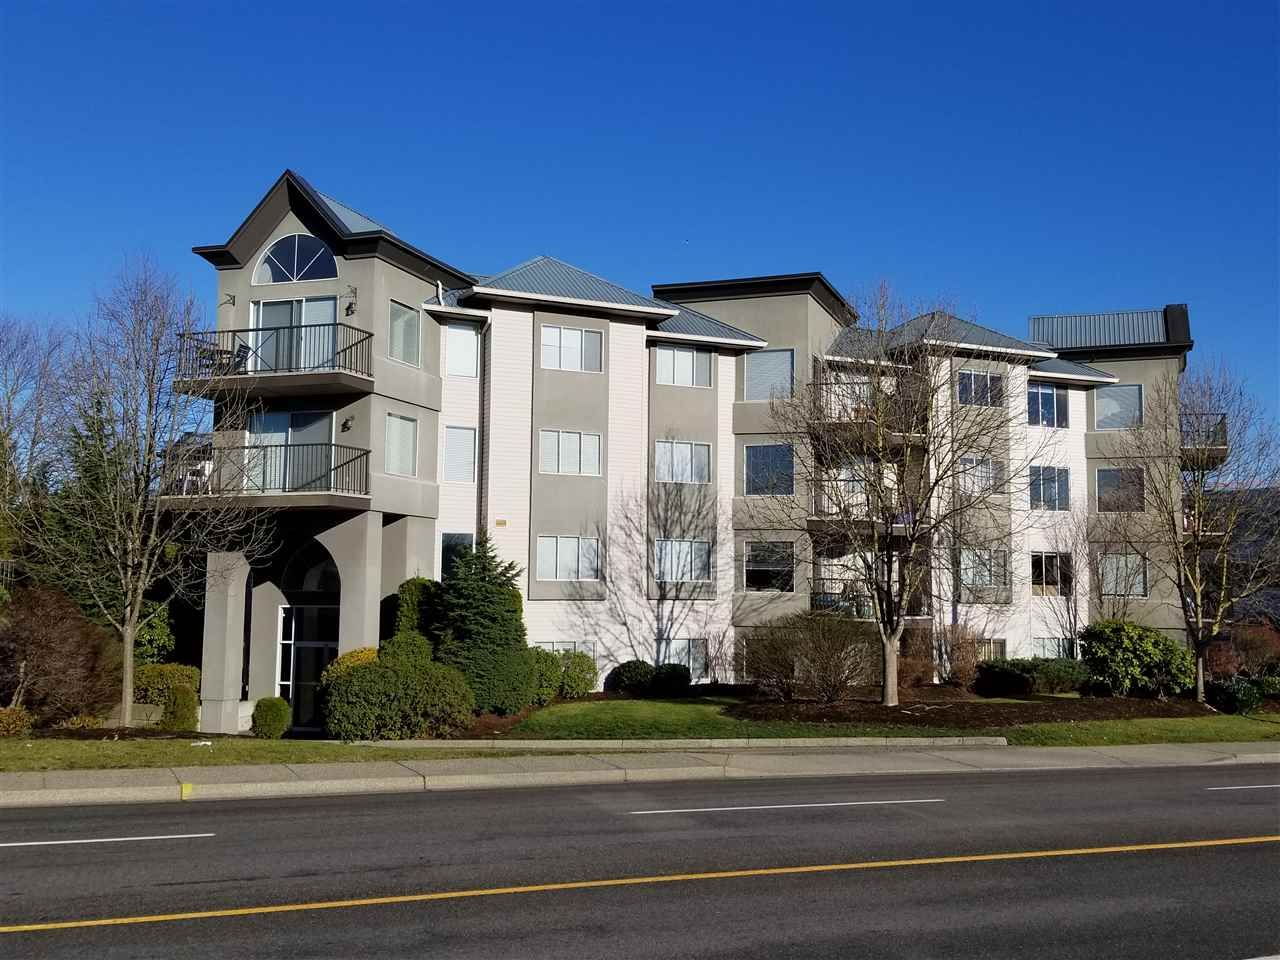 """Main Photo: 102 32725 GEORGE FERGUSON Way in Abbotsford: Abbotsford West Condo for sale in """"Uptown"""" : MLS®# R2226698"""